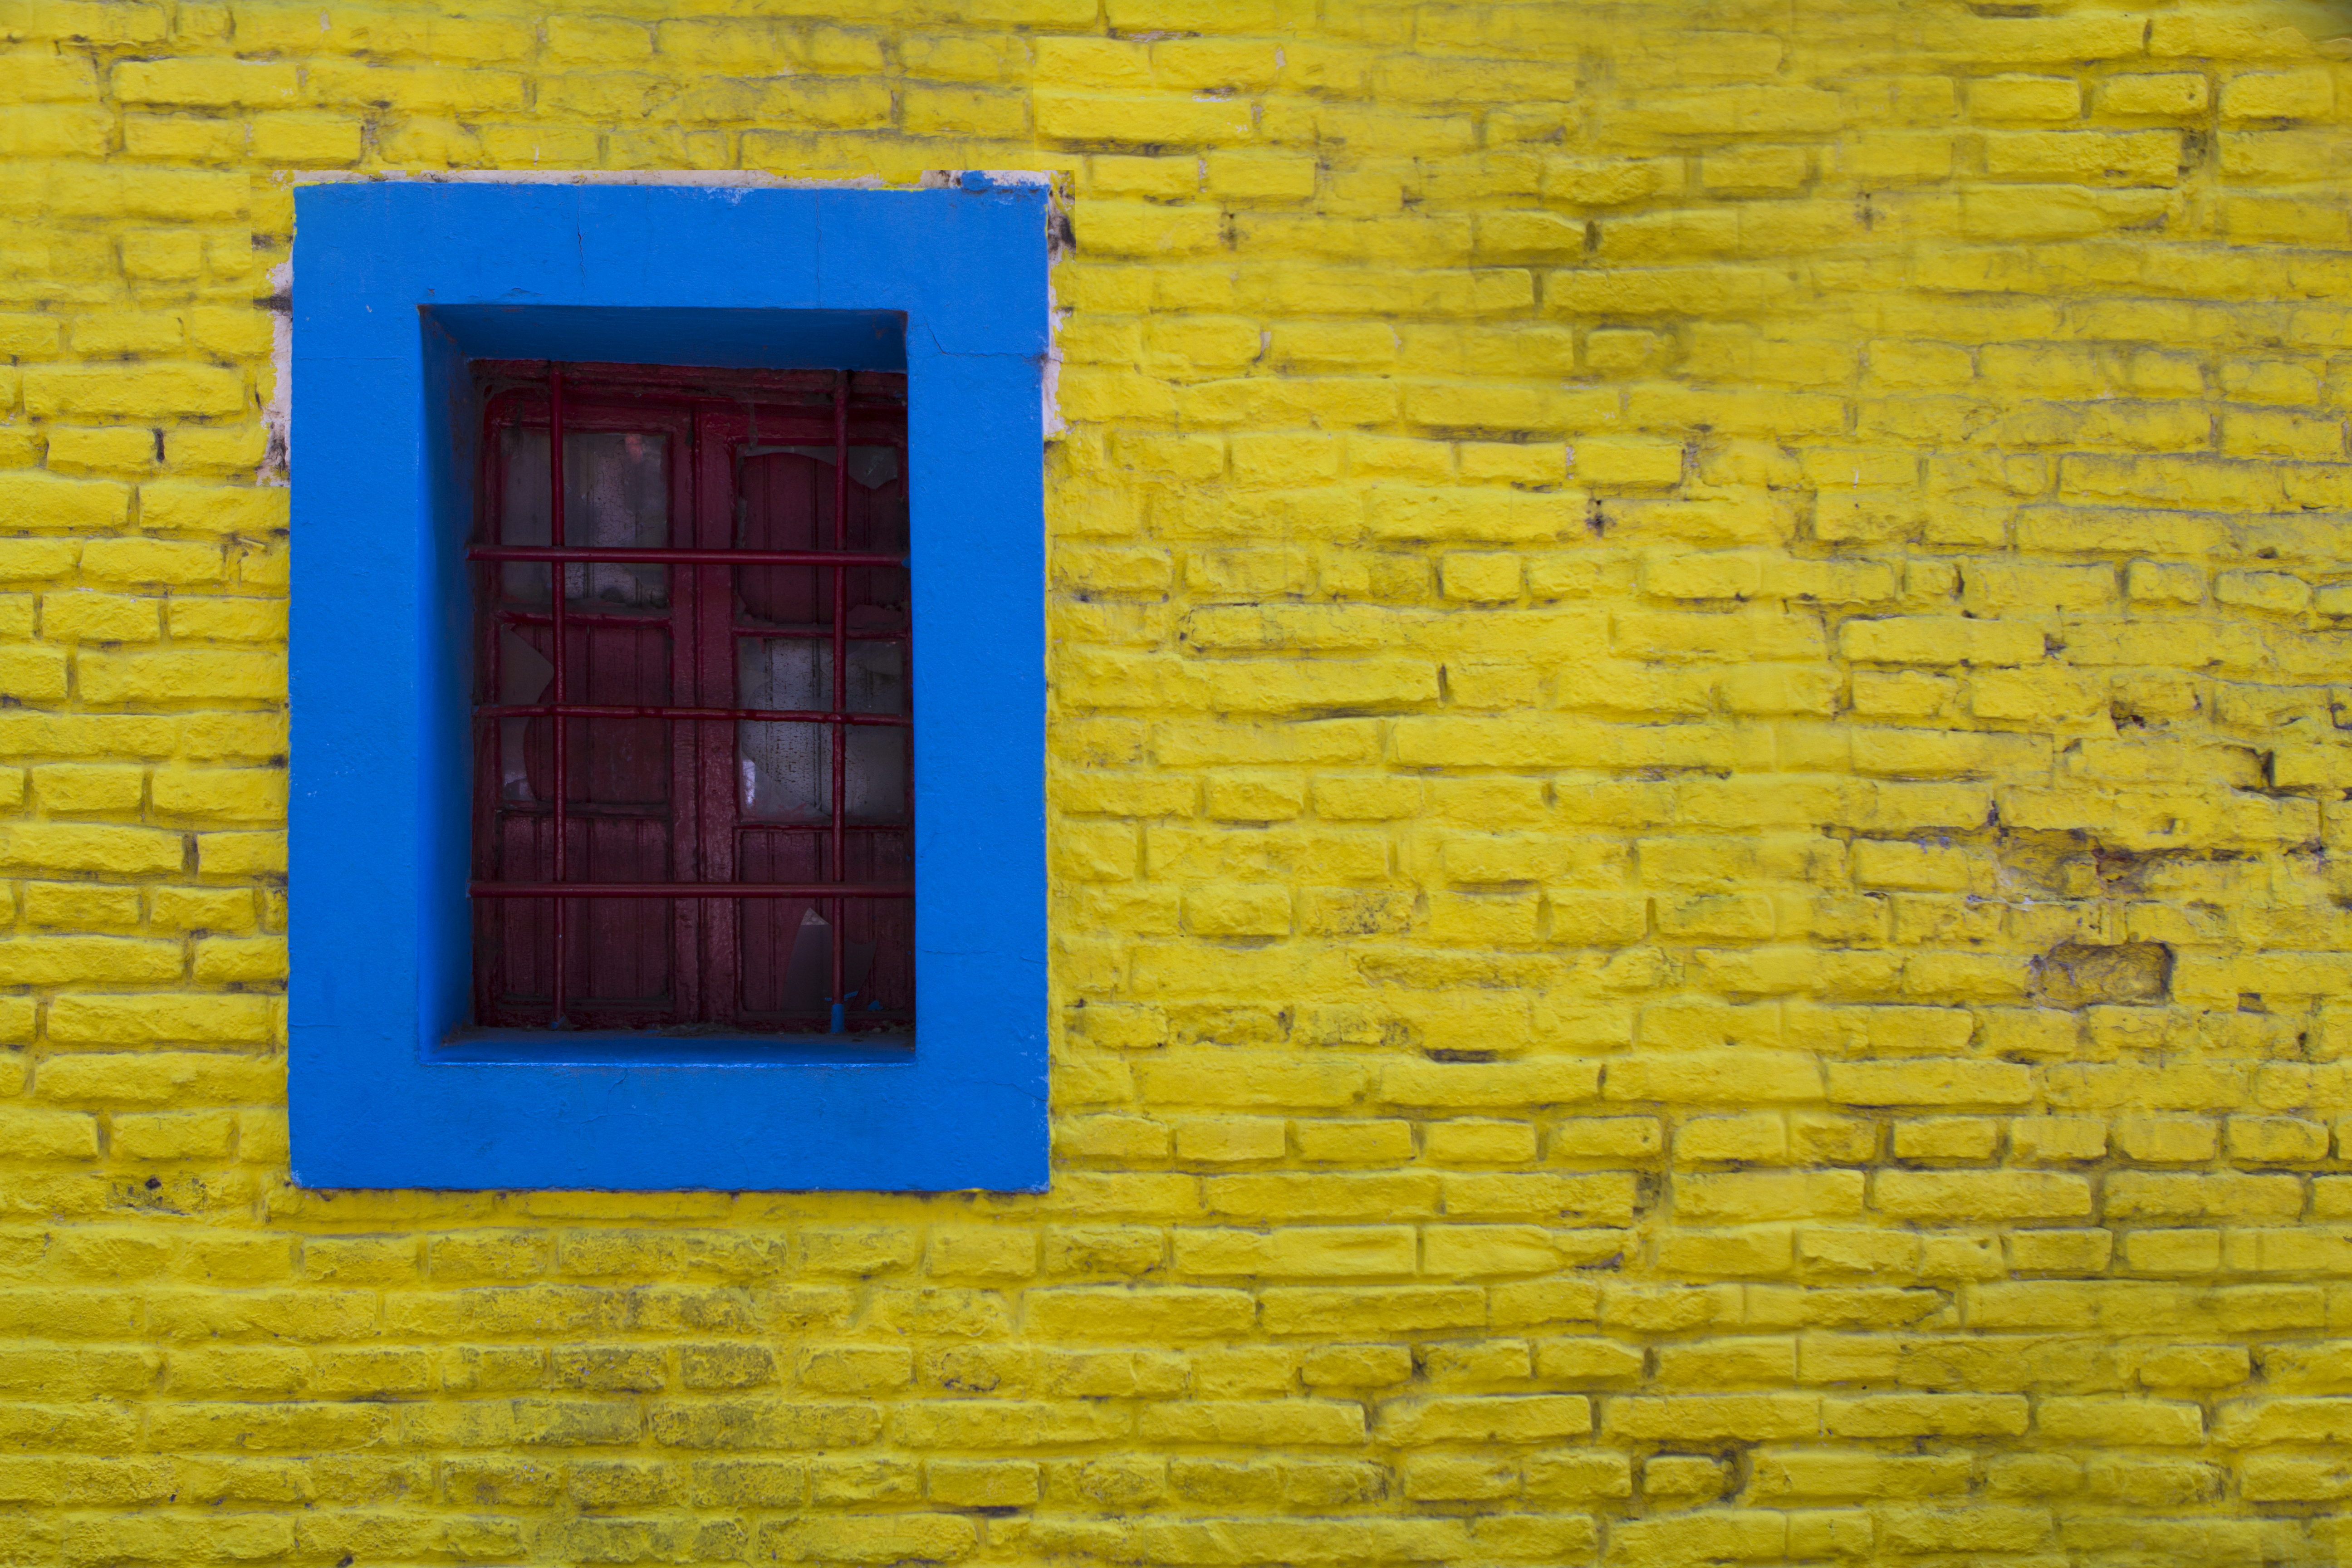 painted stone wallBlue Trim Around Window in Yellow Painted Stone Wall  Free Stock